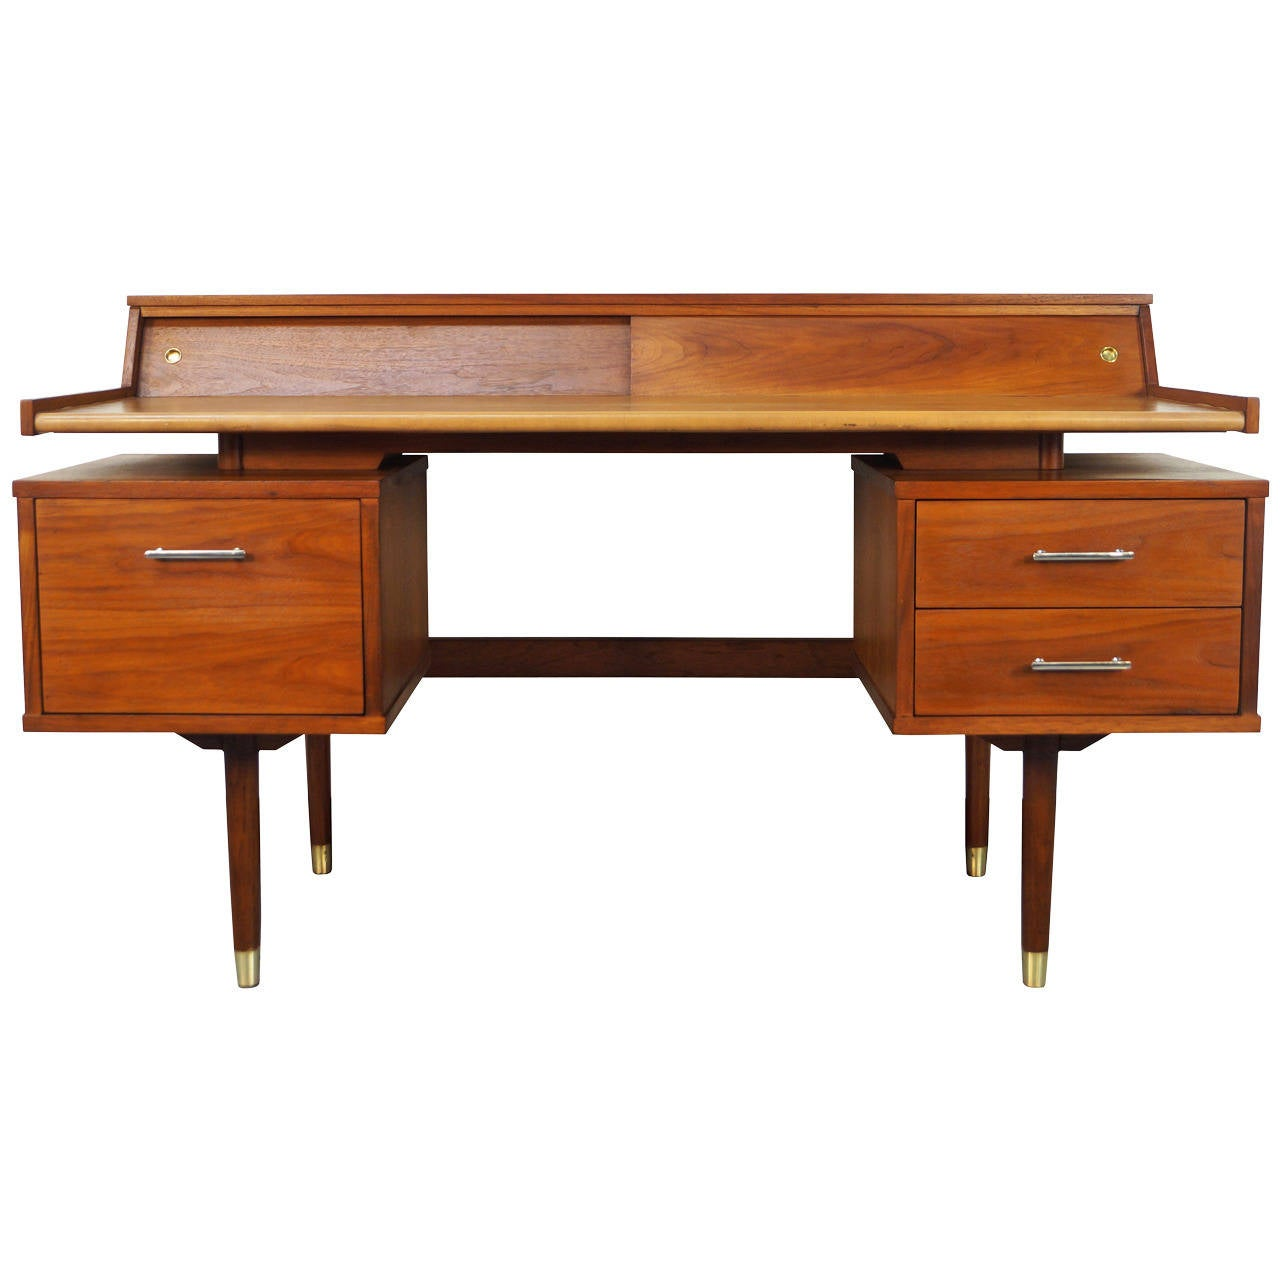 Drexel Quot Biscayne Quot Floating Leather Top Desk At 1stdibs